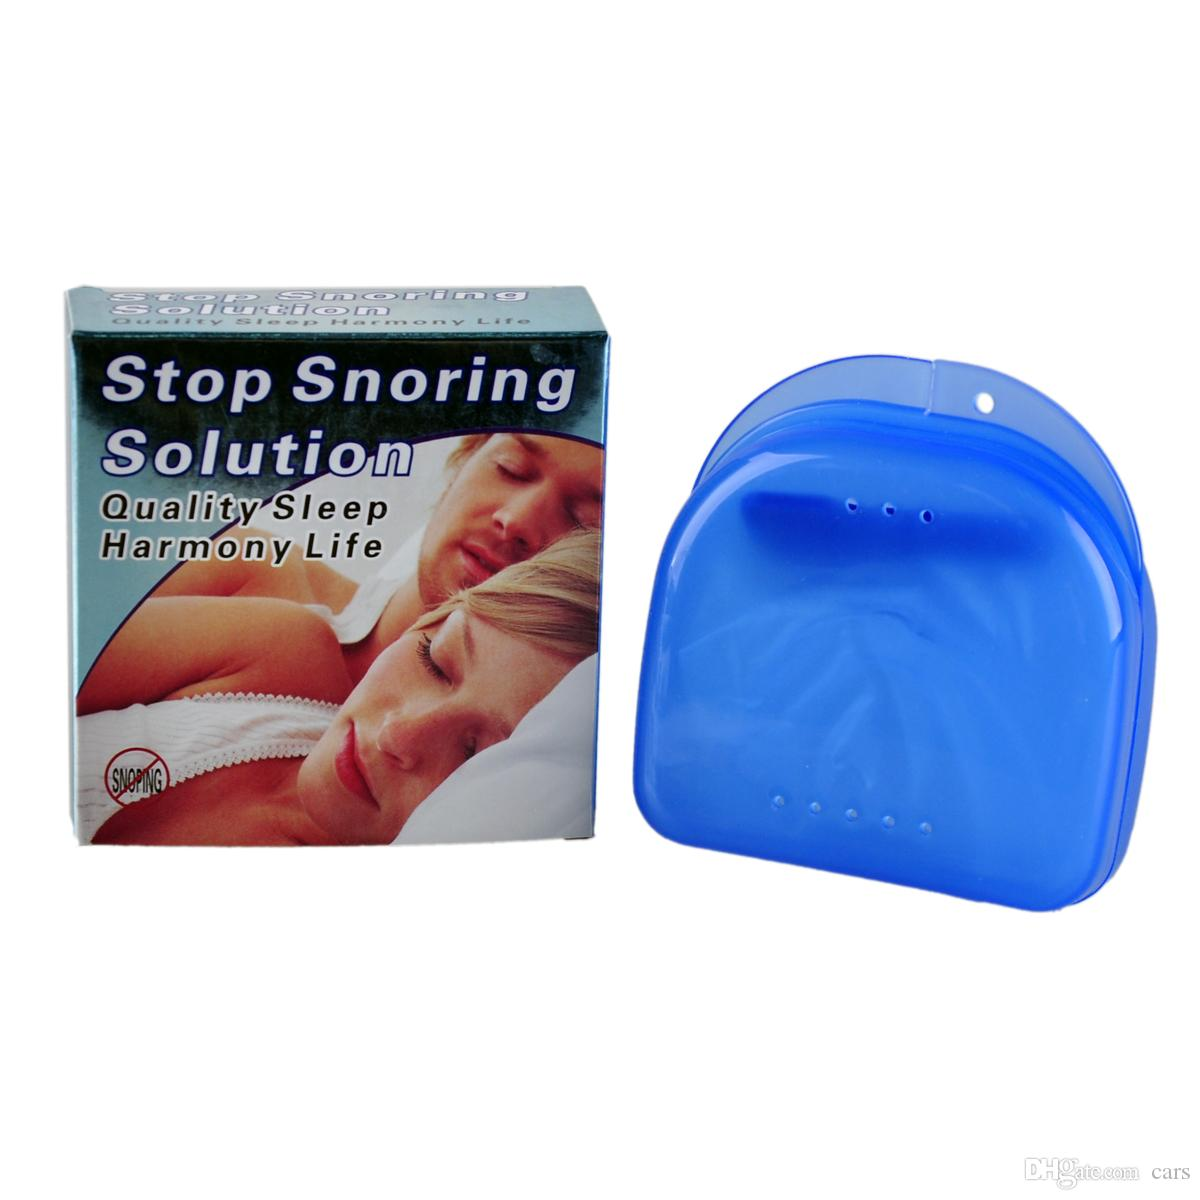 Home> Health & Beauty> Health Care> Snoring Cessation> Product detail Stop Snoring Solution Anti Snoring Soft Silicone Mouthpiece Good Nig